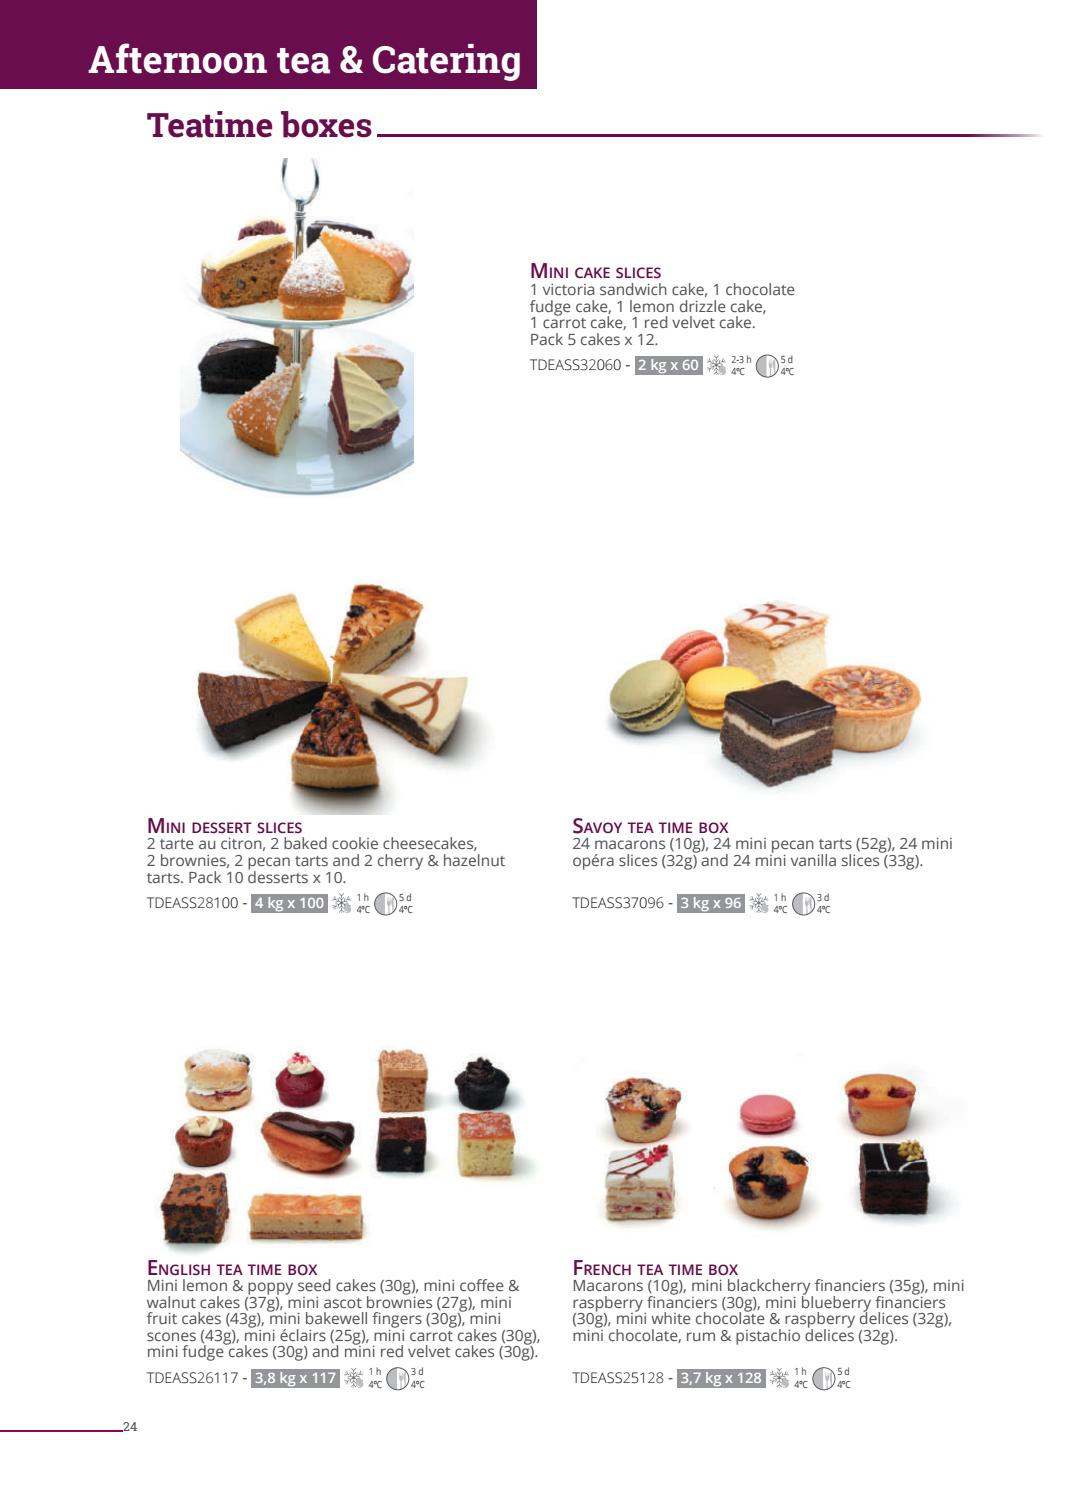 Catalogue 2018 Angleterre by La Compagnie des Desserts - issuu